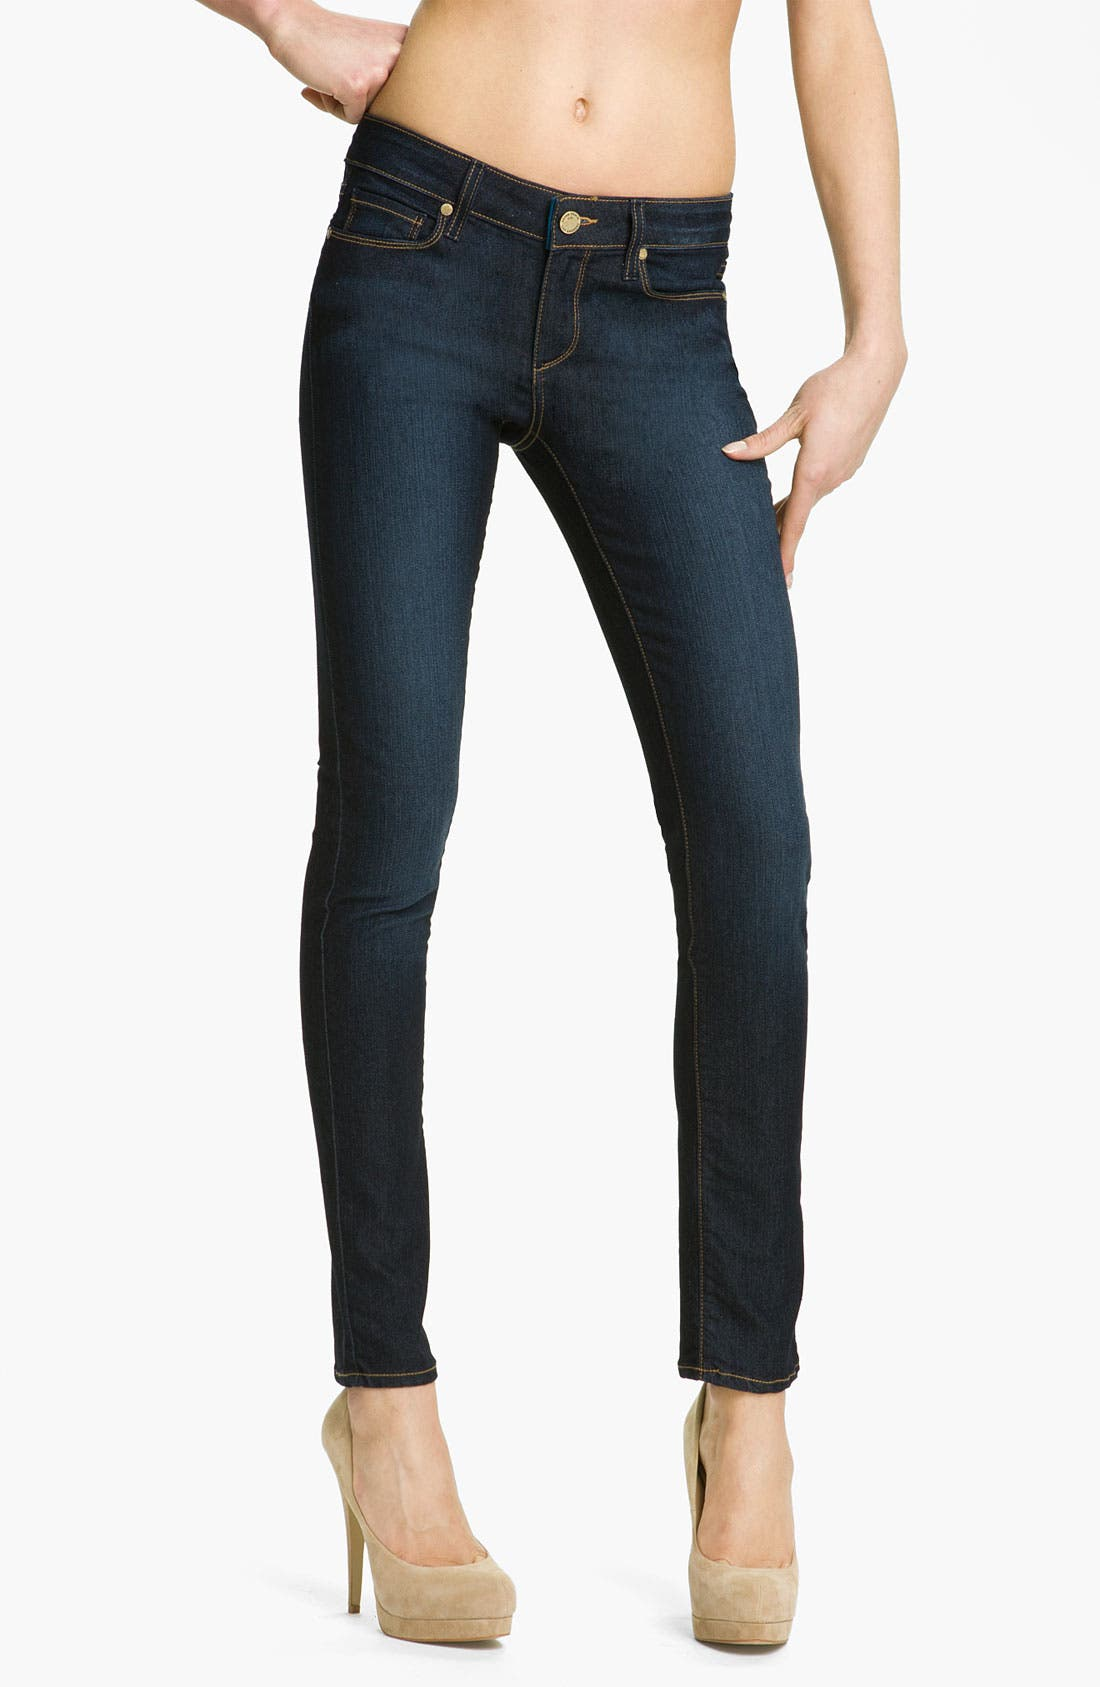 Denim 'Skyline' Stretch Skinny Jeans,                             Main thumbnail 1, color,                             400